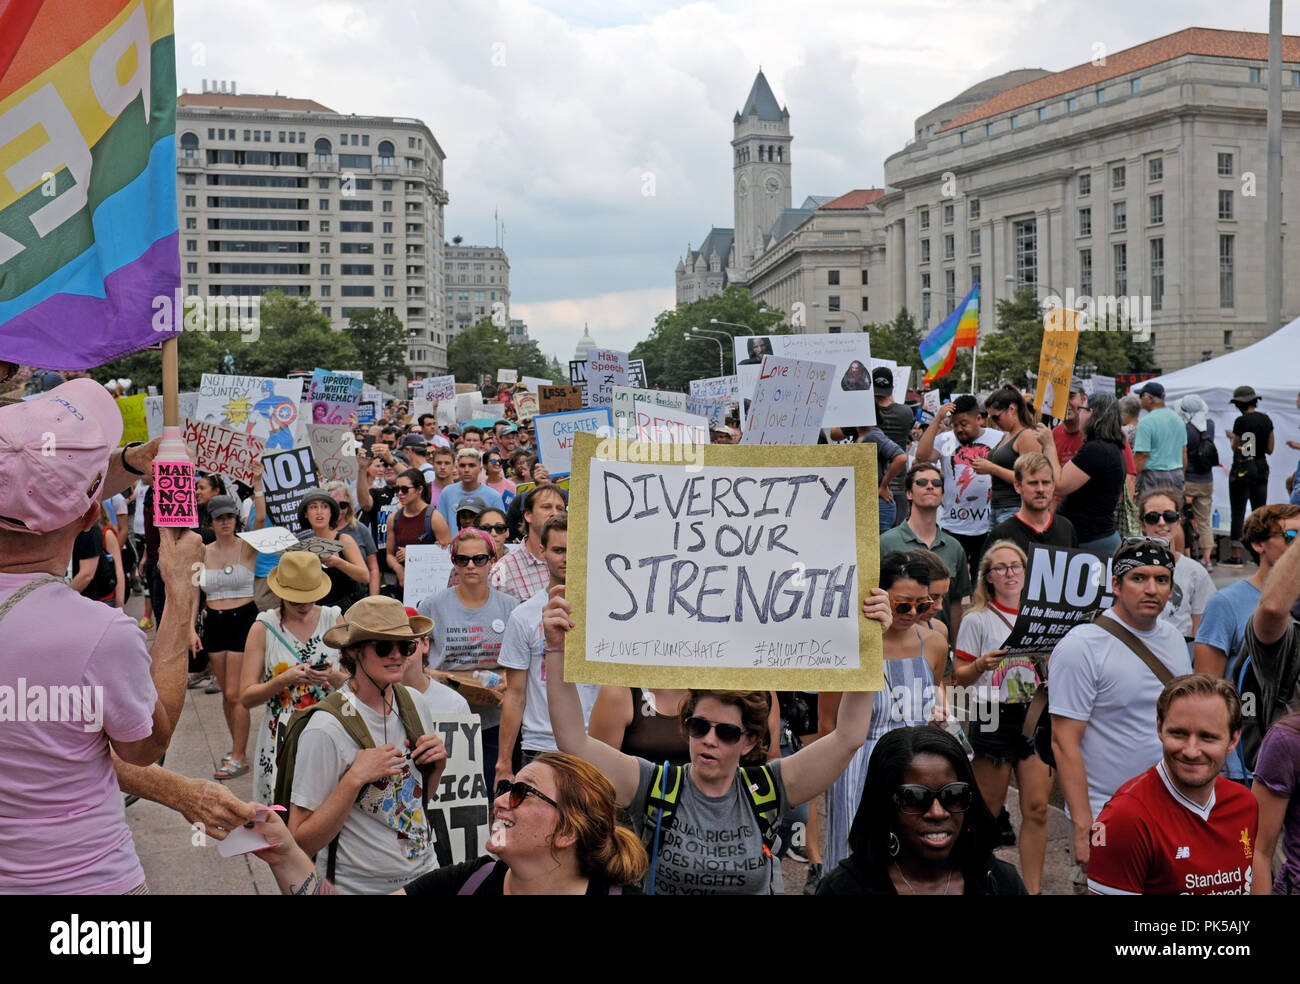 Woman holds up 'Diversity is Our Strength' sign at a rally in Washington D.C. Freedom Park as they take to the streets to protest racism and hate. - Stock Image